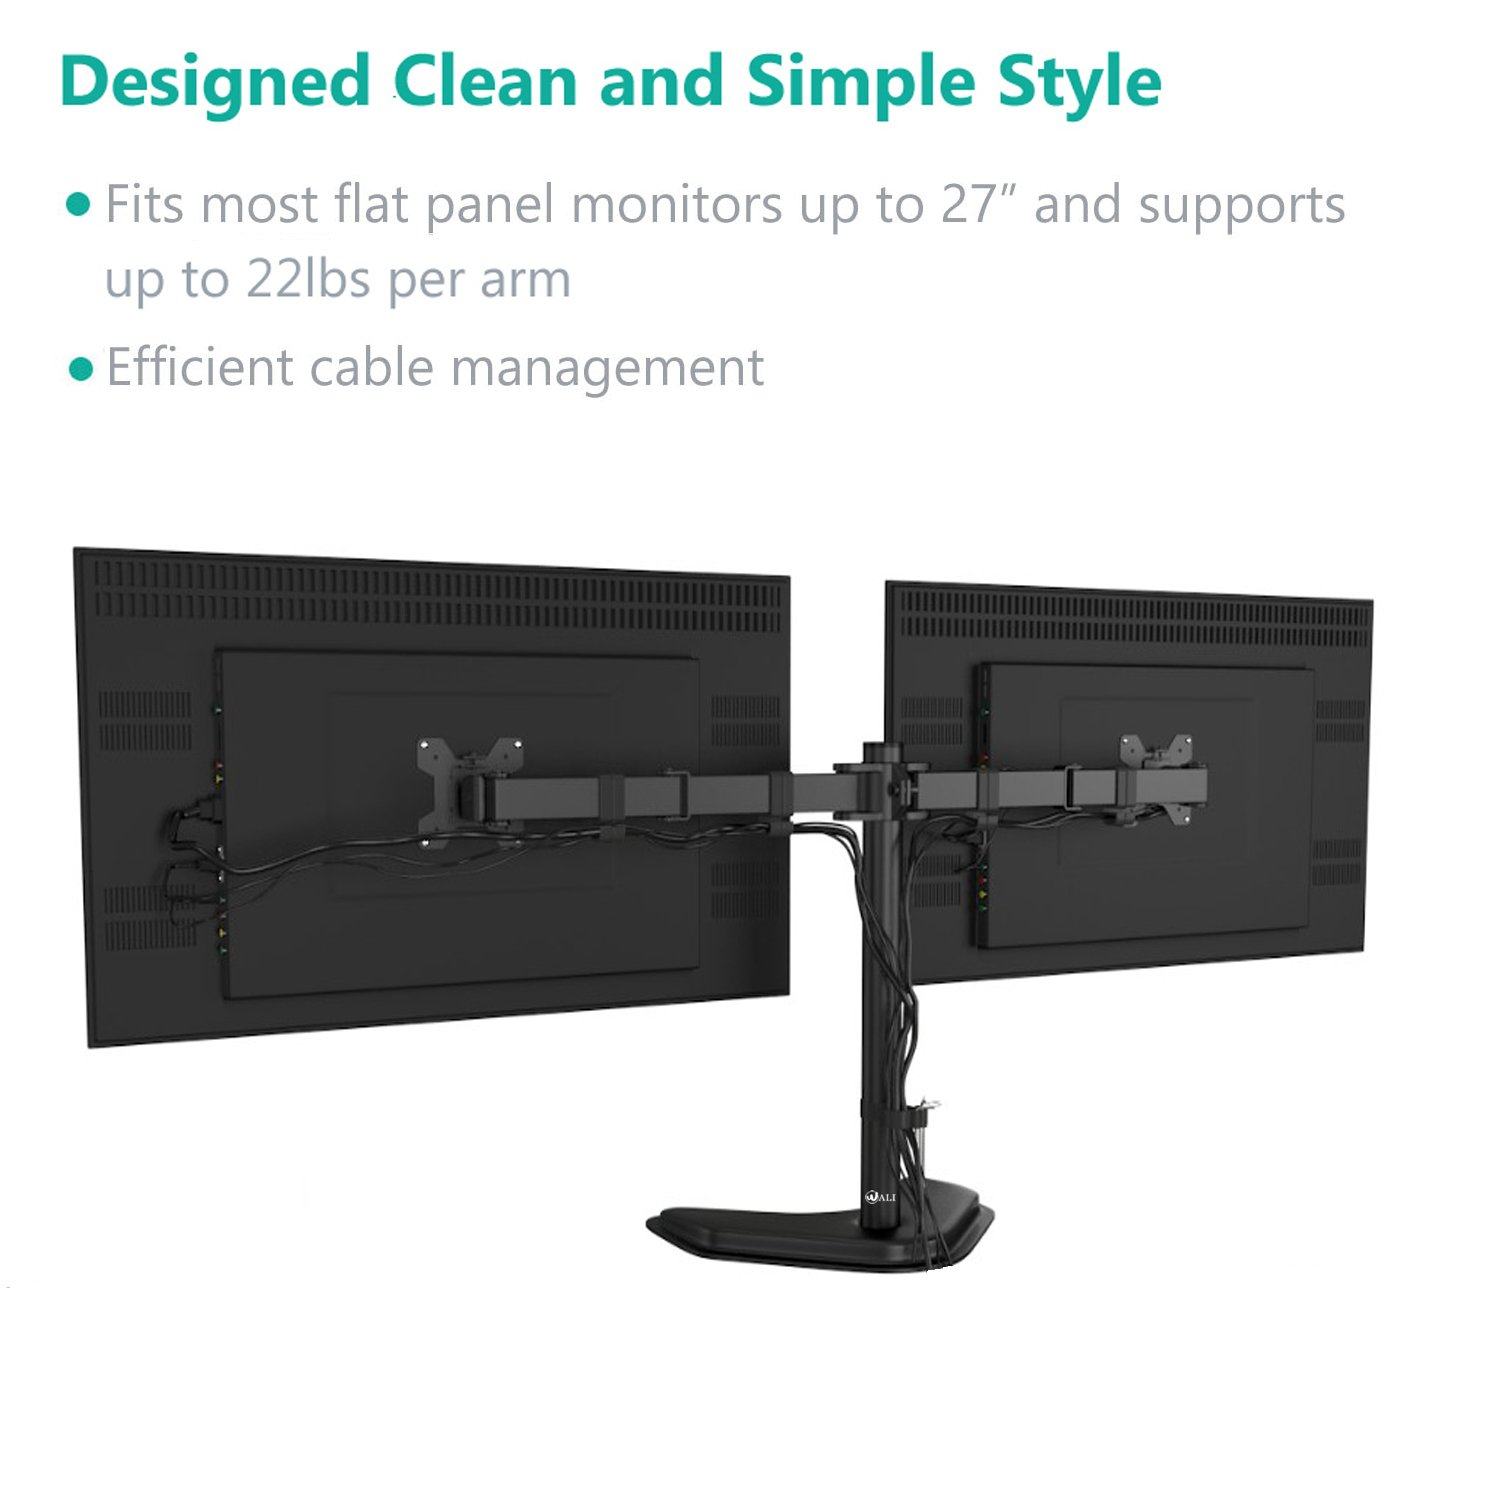 """WALI Free-Standing Dual LCD Monitor Fully Adjustable Desk Mount Fits Two Screens up to 27"""", 22 lbs. Weight Capacity per Arm (MF002), Black by WALI (Image #2)"""